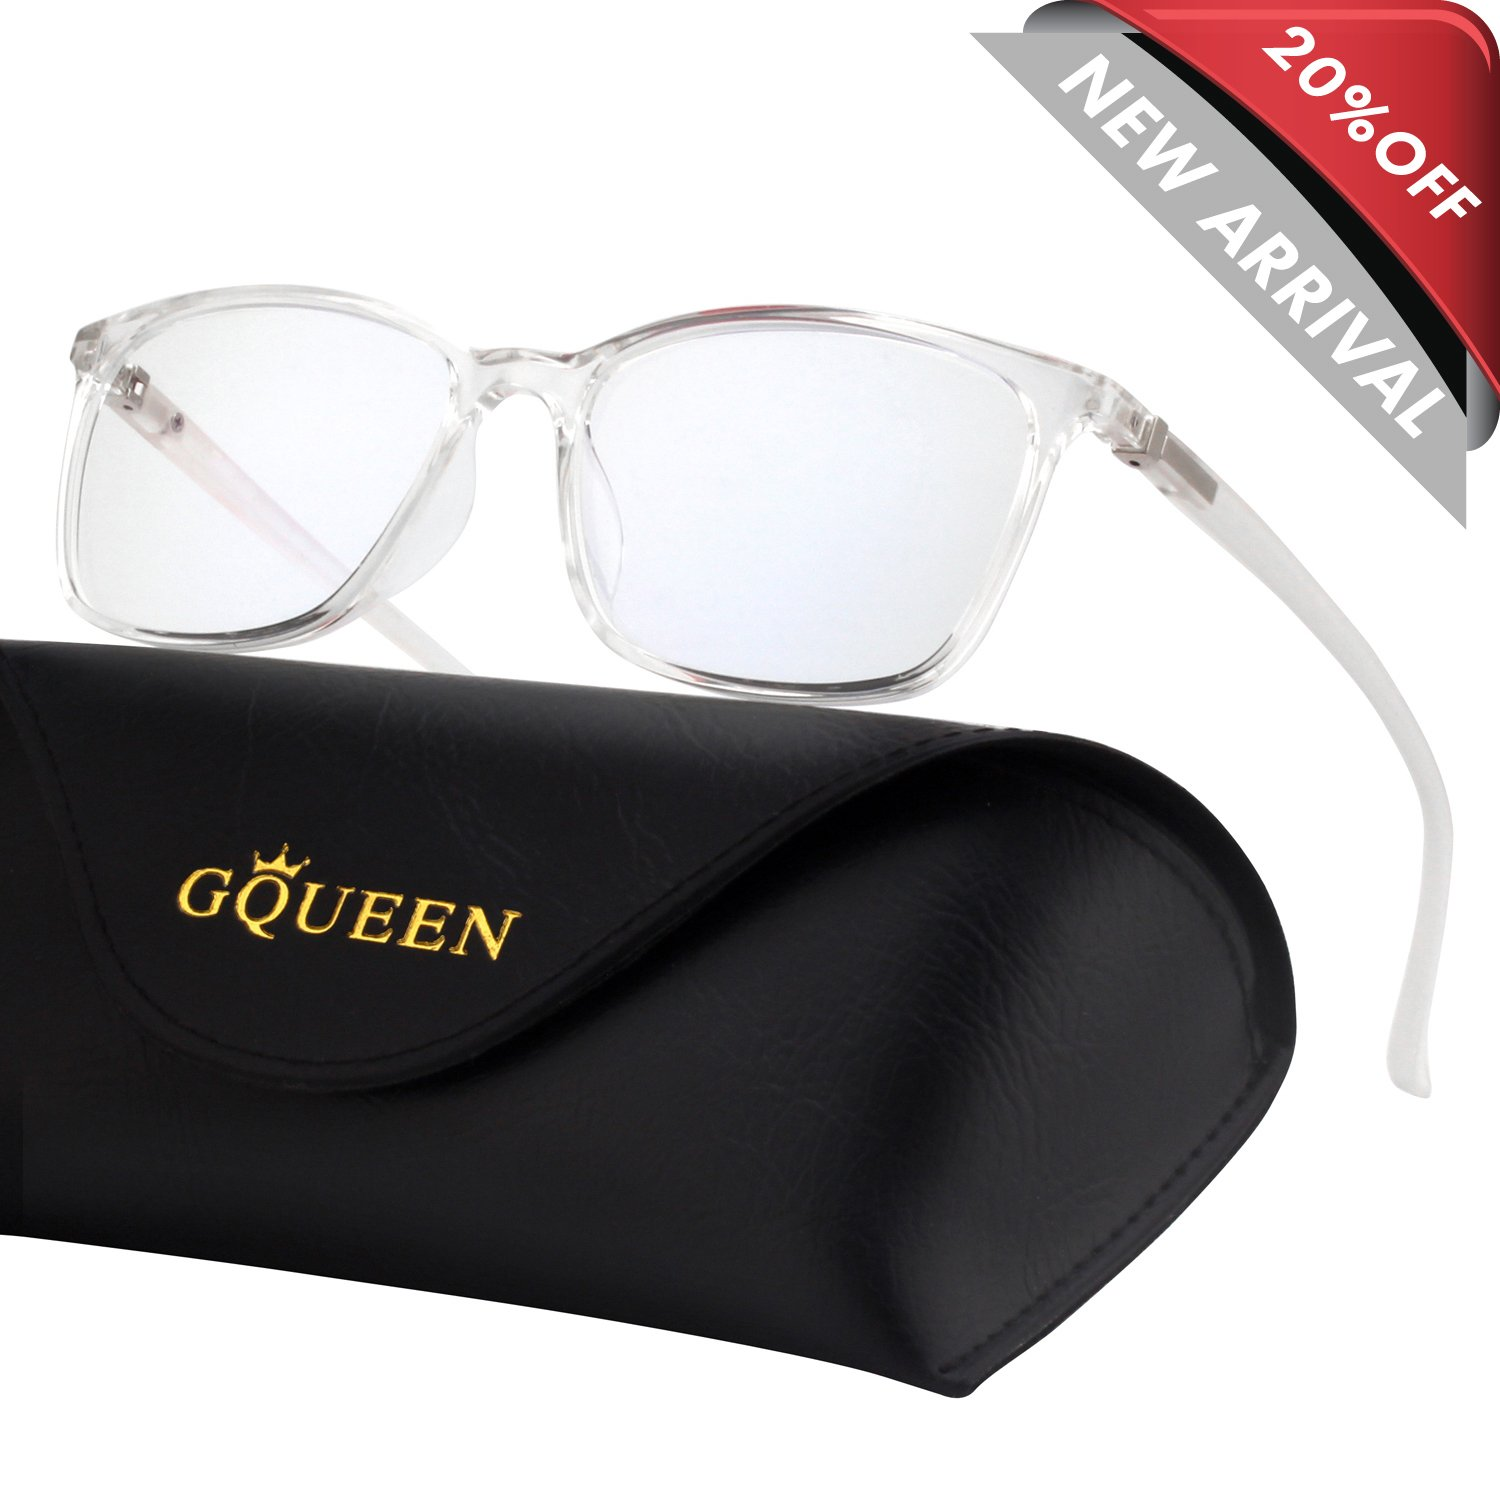 GQUEEN Blue Light Blocking Computer Glasses Gaming Better Sleep Anti Glare Eye Fatigue with TR90 Rectangle Frame Transparent Lens Unisex GQ318